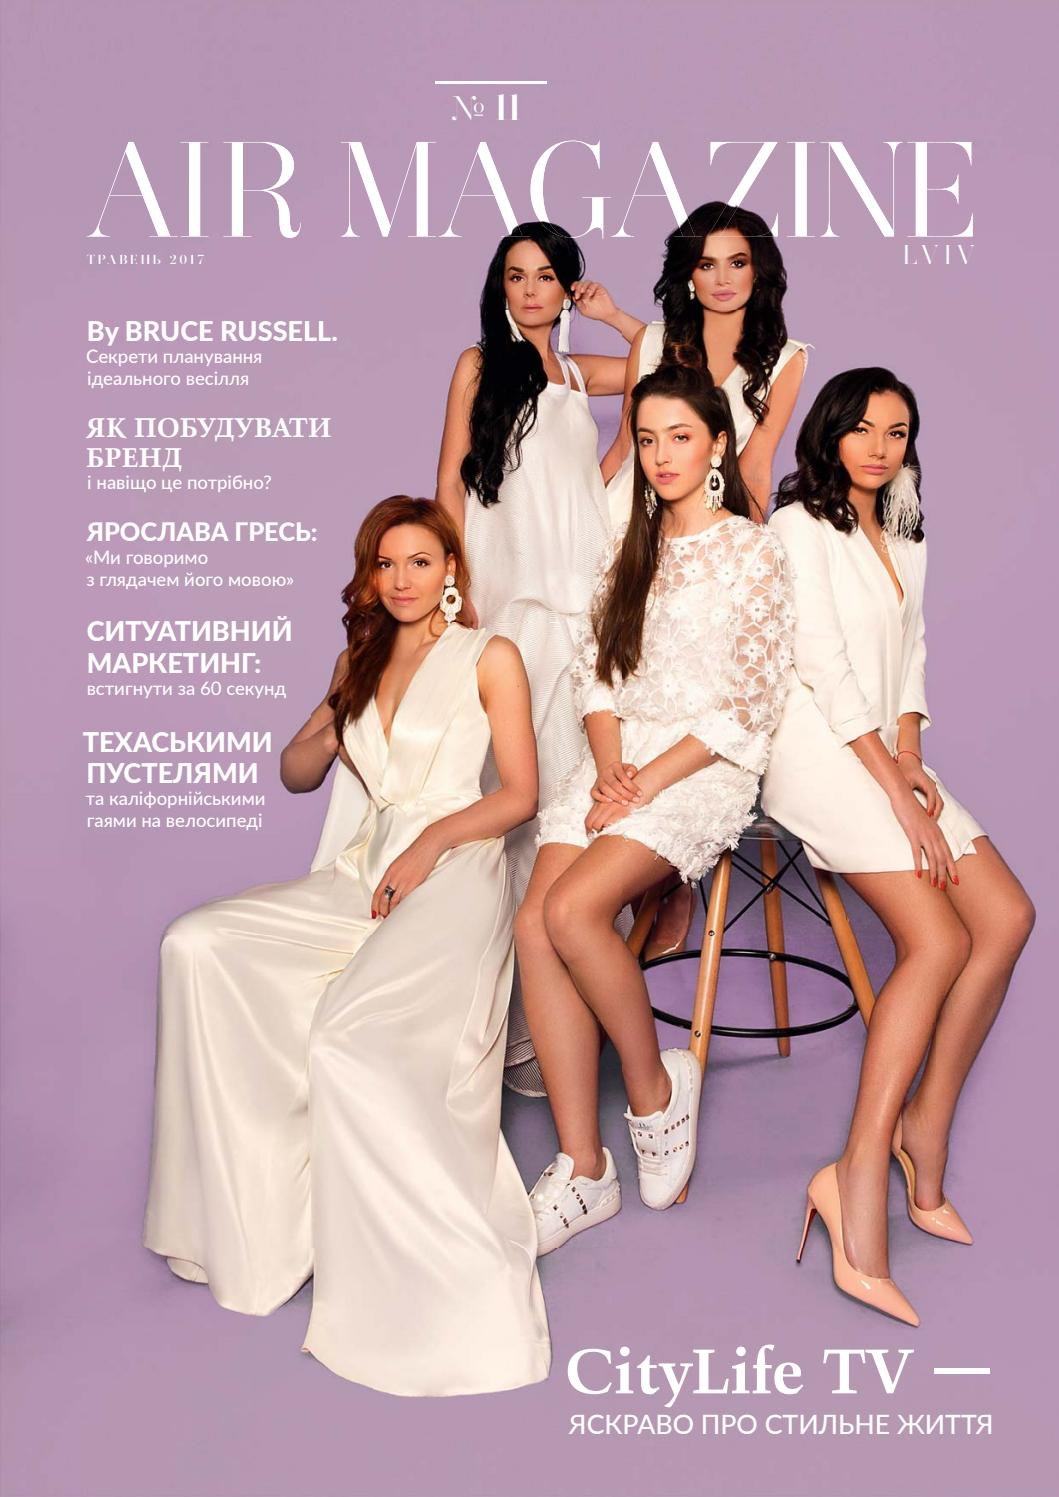 Air mag lviv 05 17 web by AIR MAGAZINE LVIV - issuu ca51a0ac53753